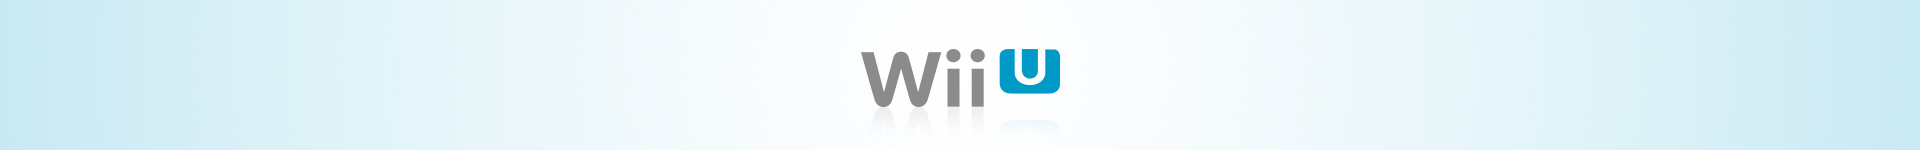 Buy Wii U accessories at Coolshop